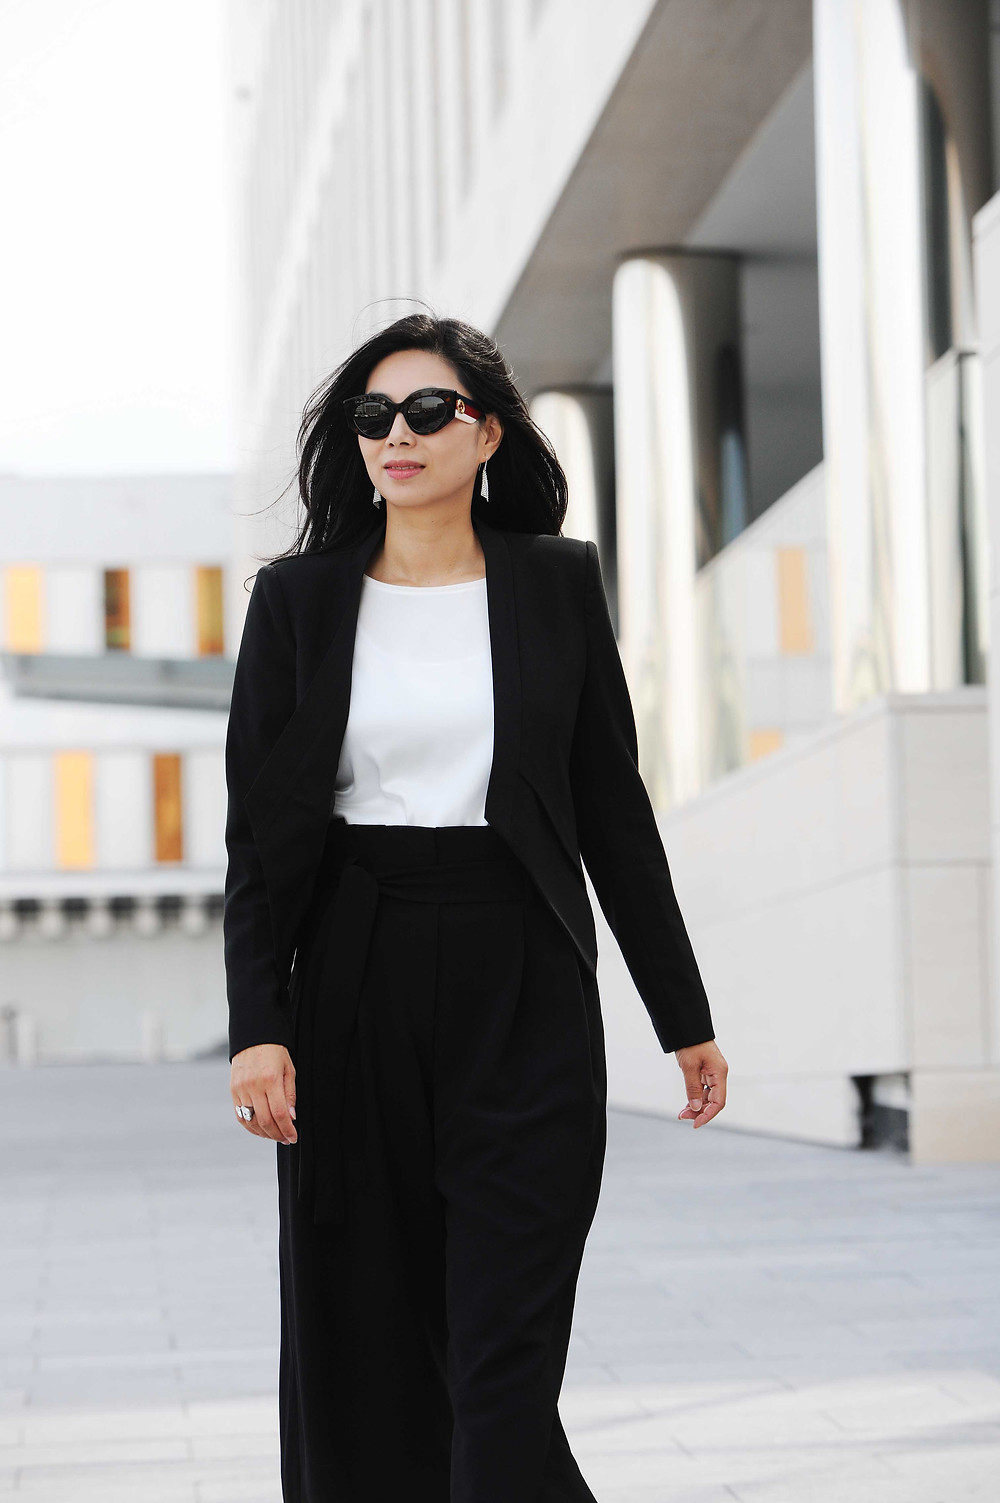 Business Formal black and white work outfit for women